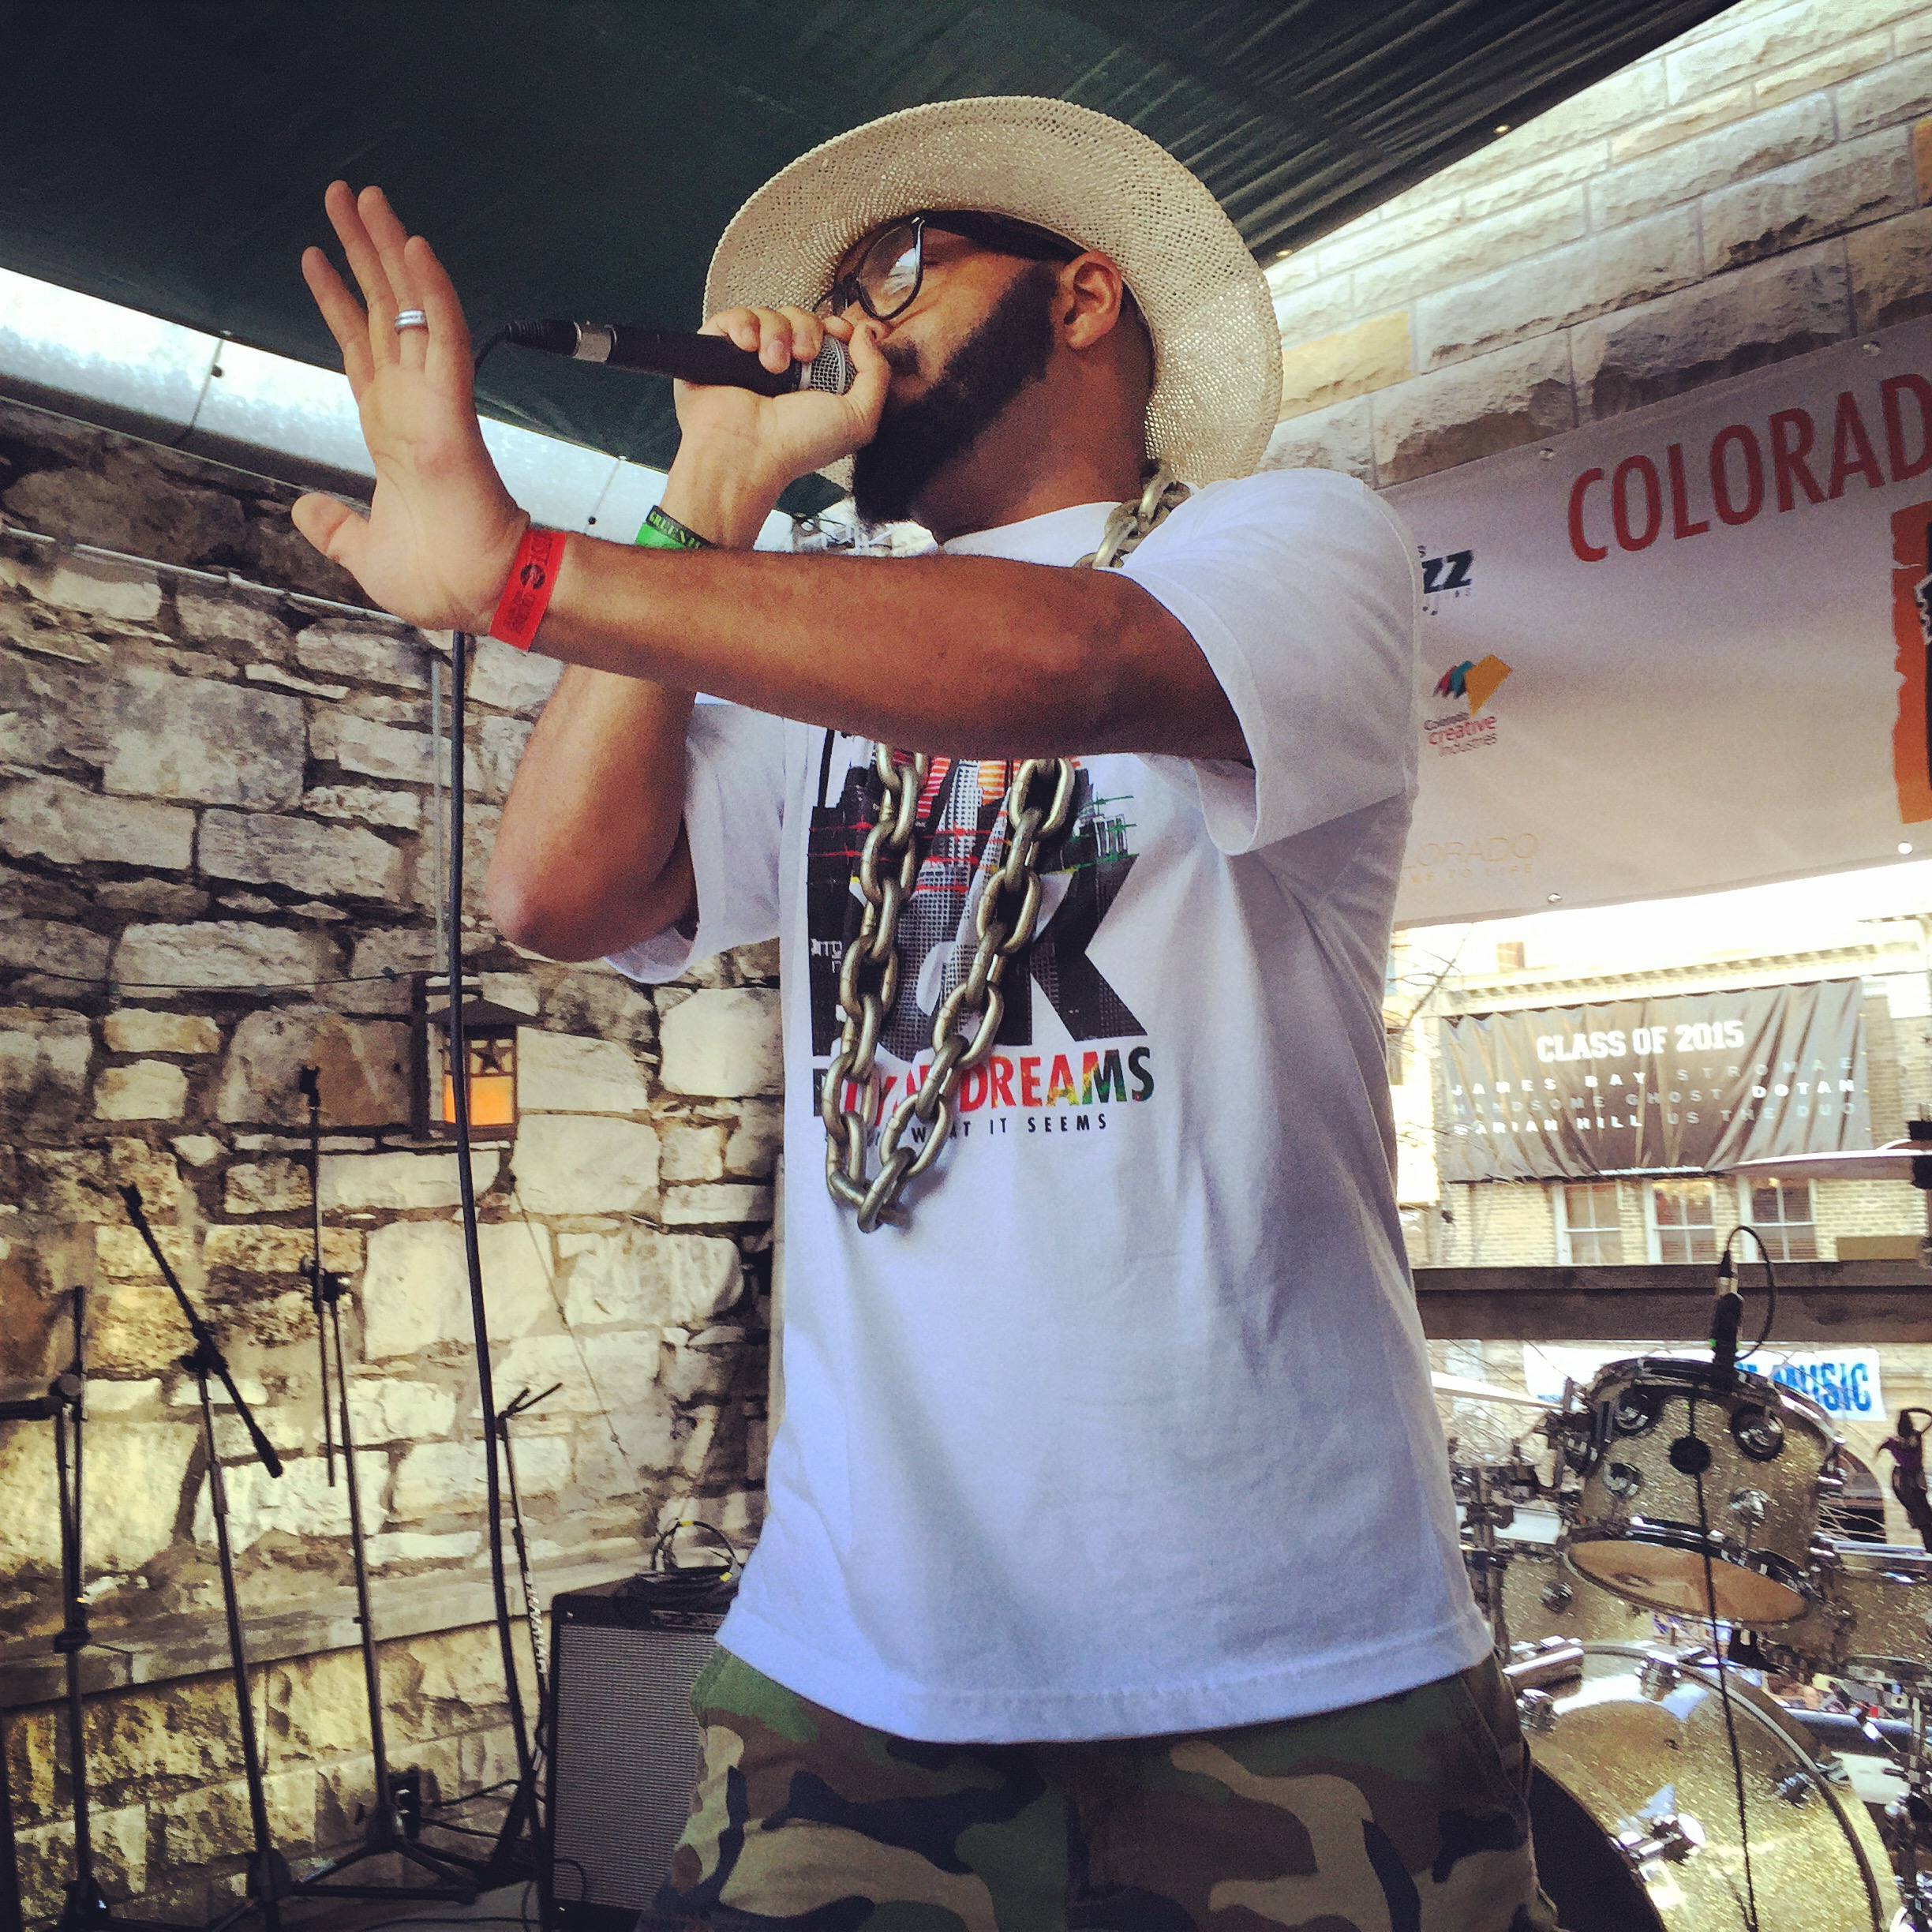 Denver rapper SarCa$t performed at the Colorado Music Party during SXSW 2015. Photo by Quentin Young